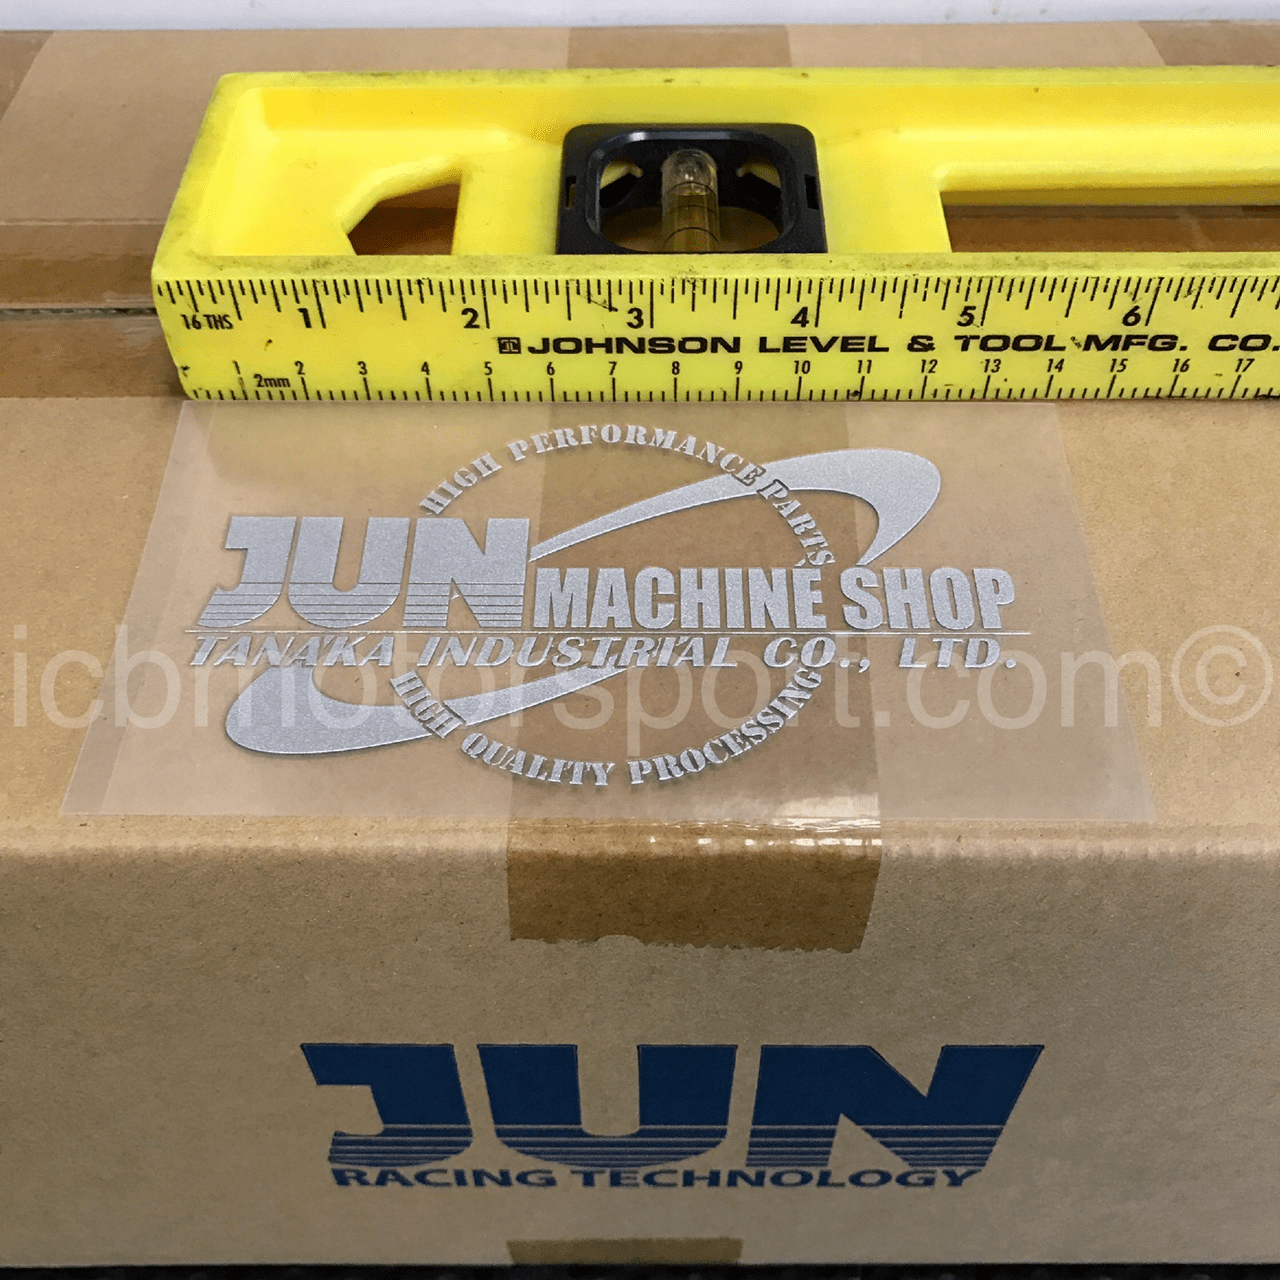 JUN Auto Mechanic Machine Shop Silver Decal 140mmx80mm Free Shipping